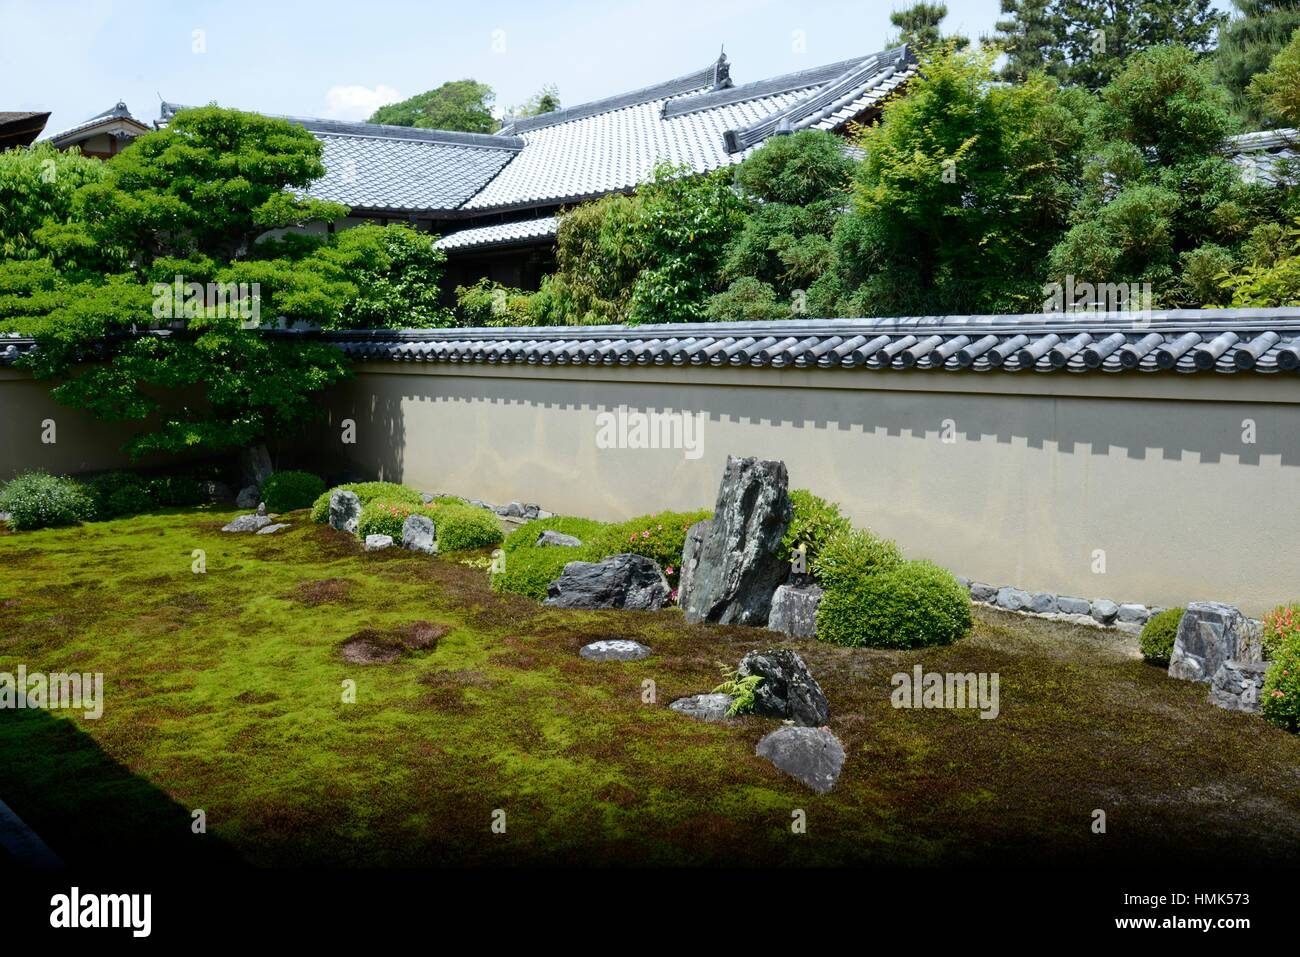 Ryogen-in Temple, Daitoku-ji, Kyoto,Japan. - Stock Image